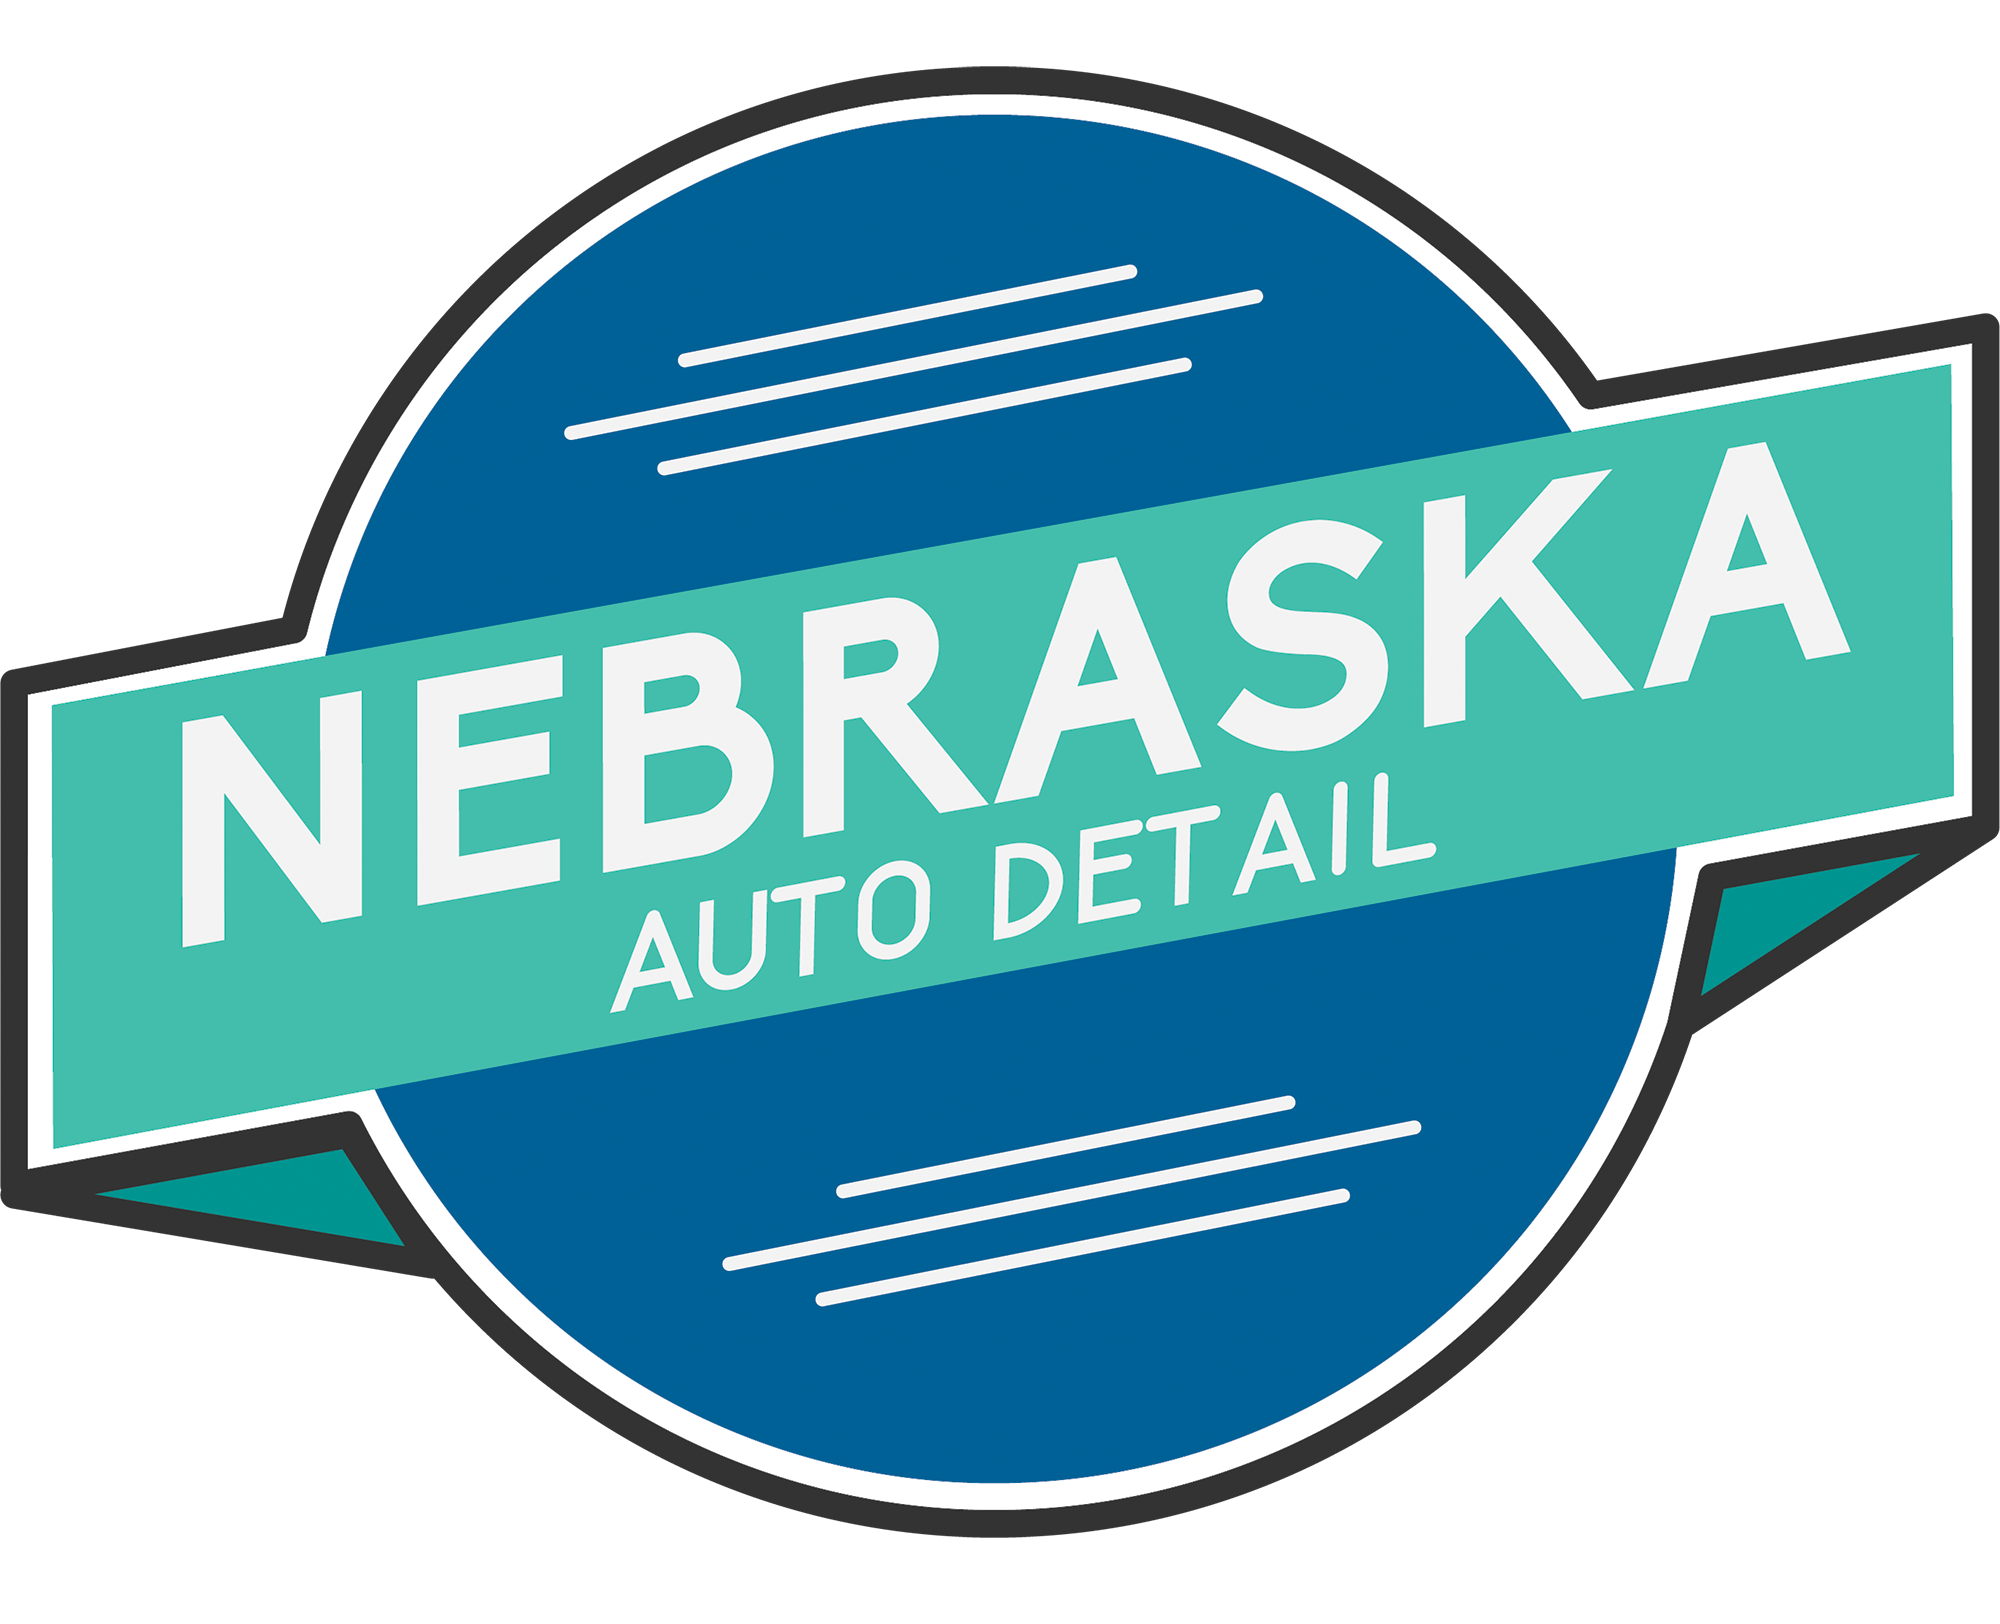 Quality Interior & Exterior Auto Detailing in Lincoln, Nebraska